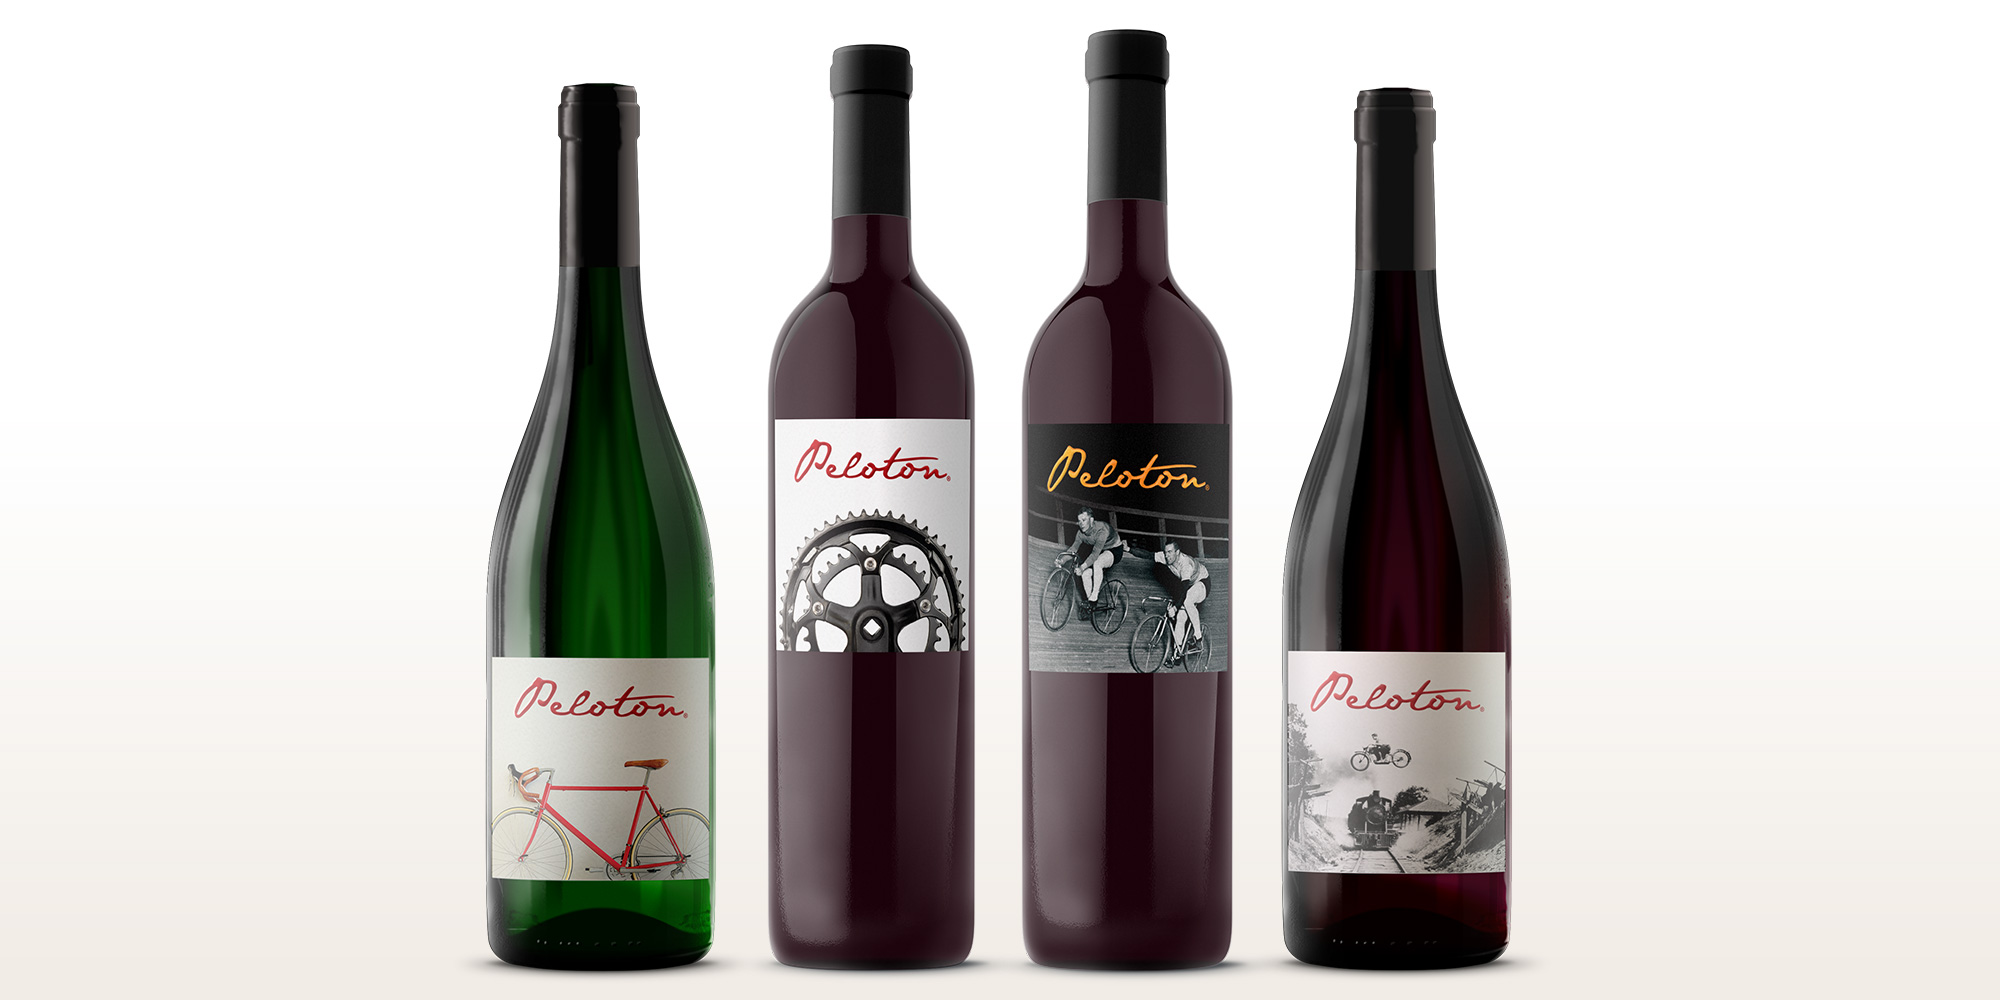 Peloton Cellars wine bottle overview